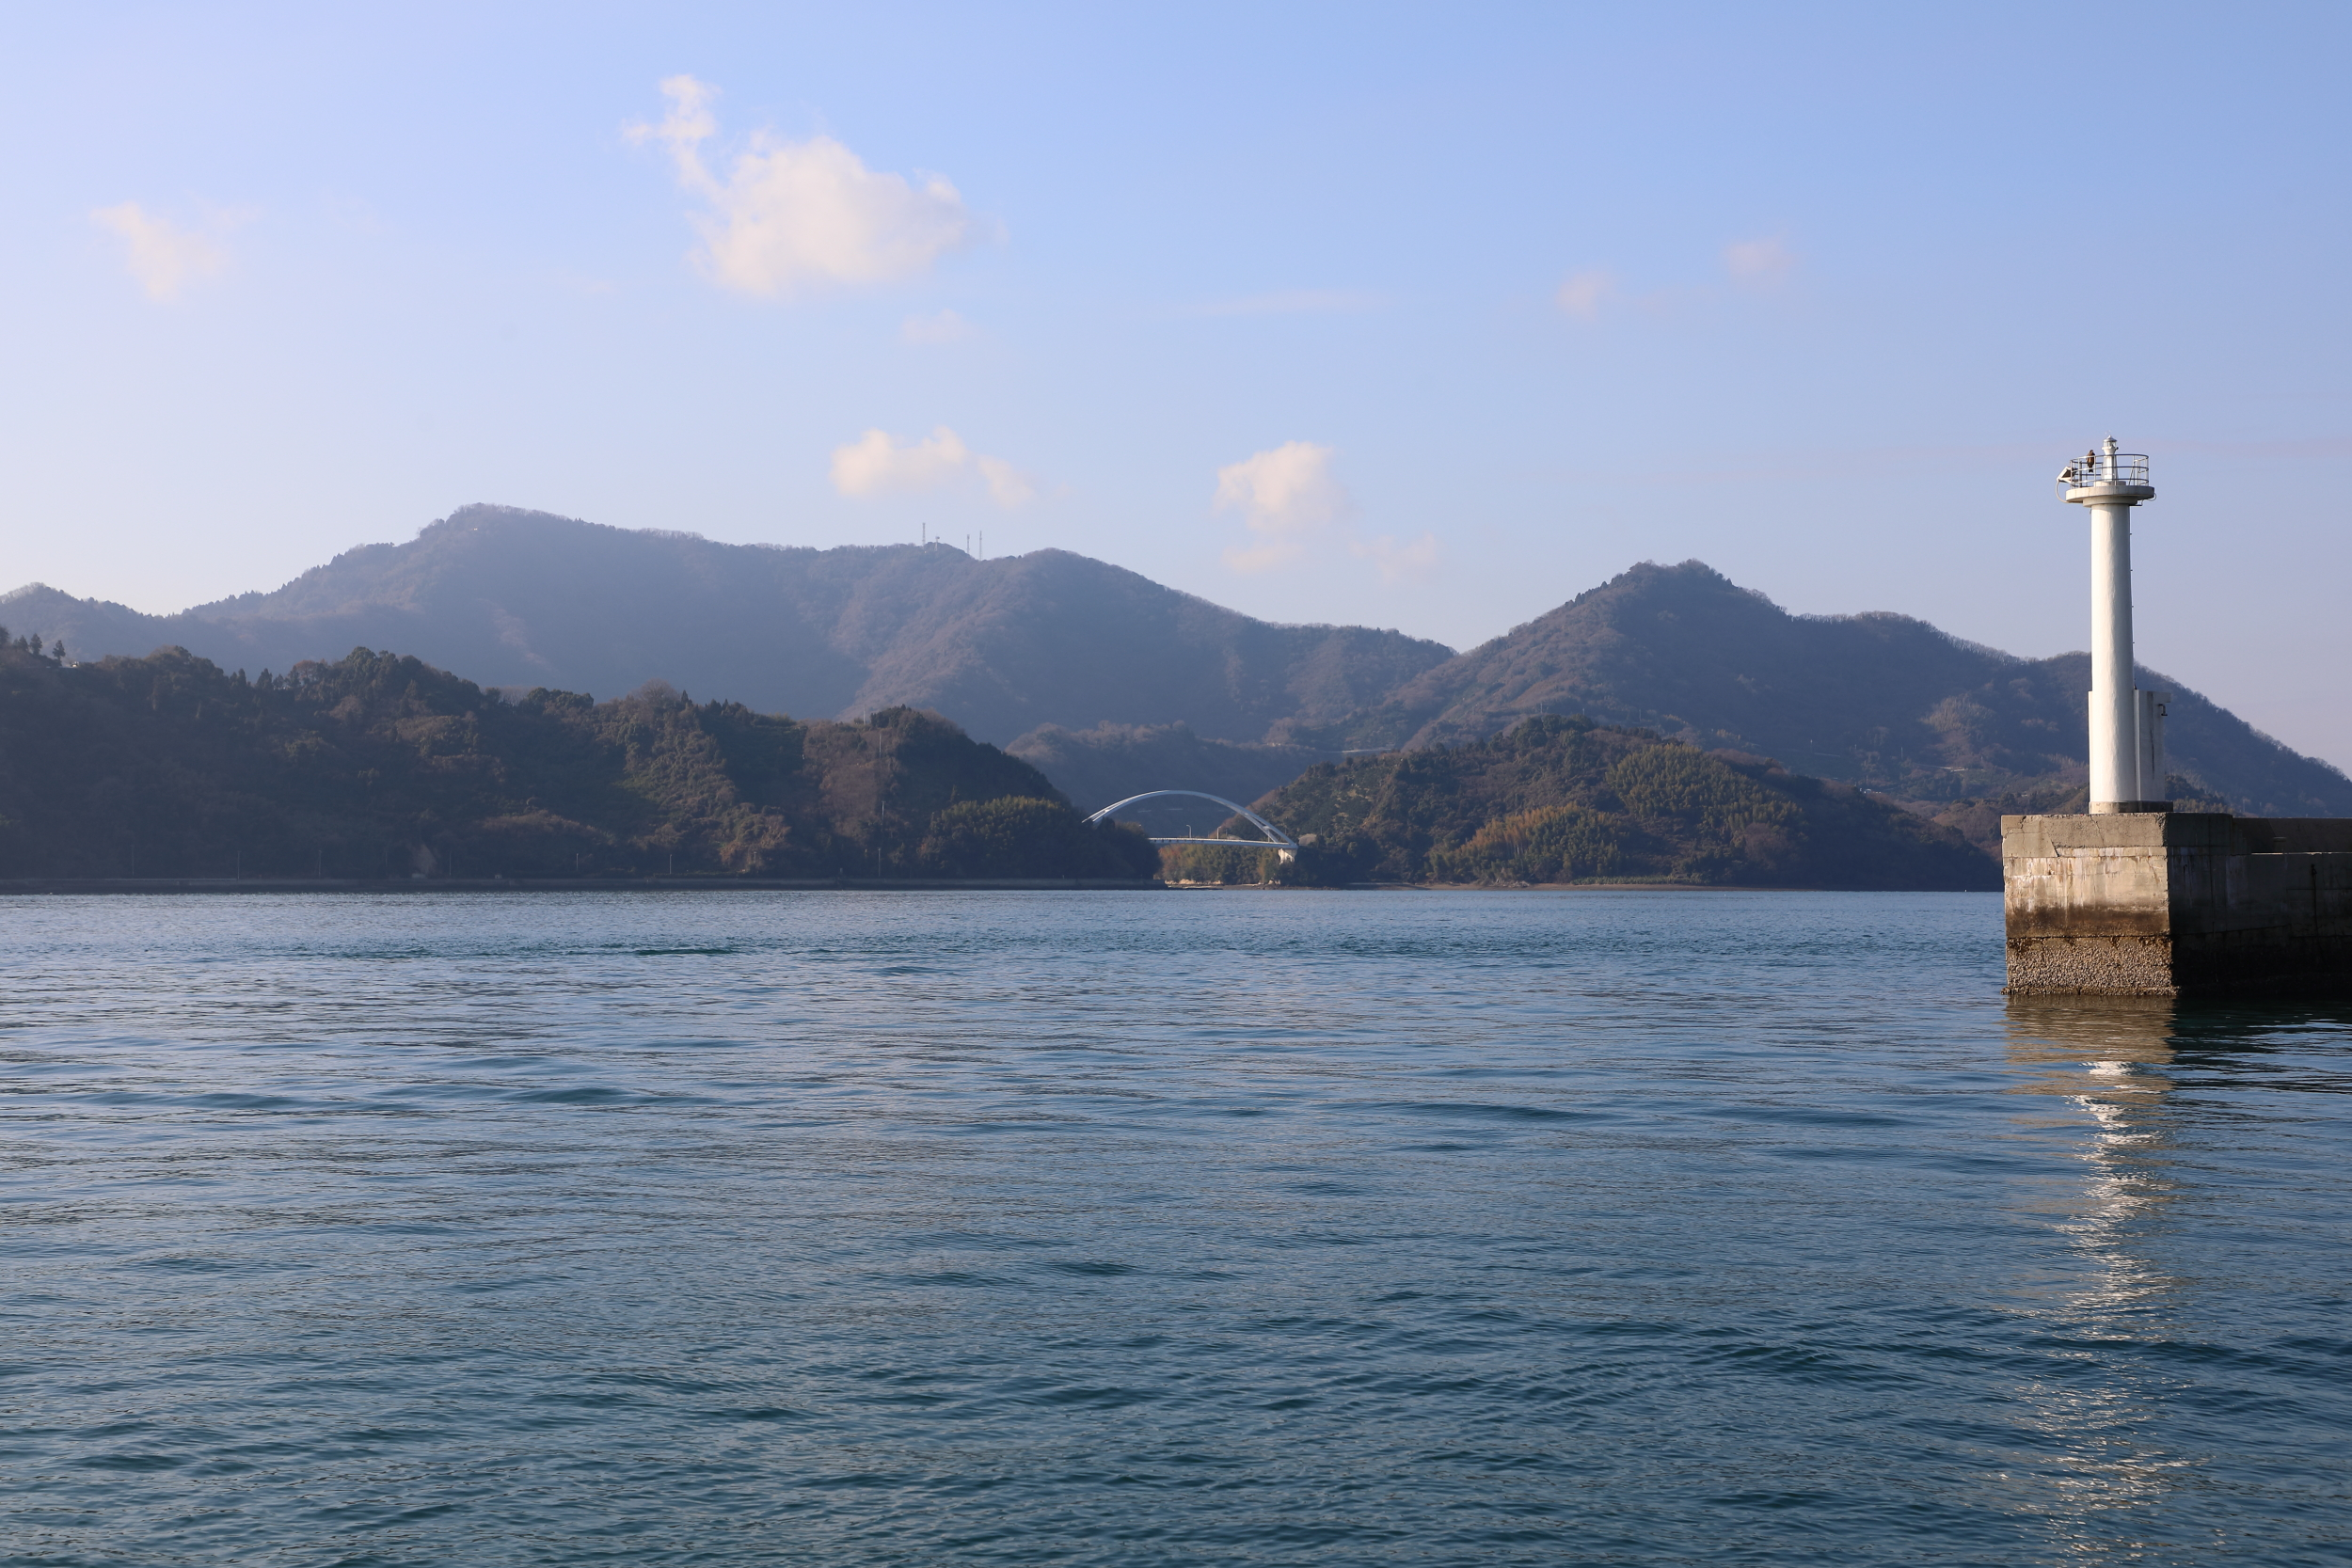 Seen from a ferry stop on neighboring Osakikamijima Island, the entrance to Osakishimojima's main harbor is under the bridge that connects two small islands located just in front of the island.